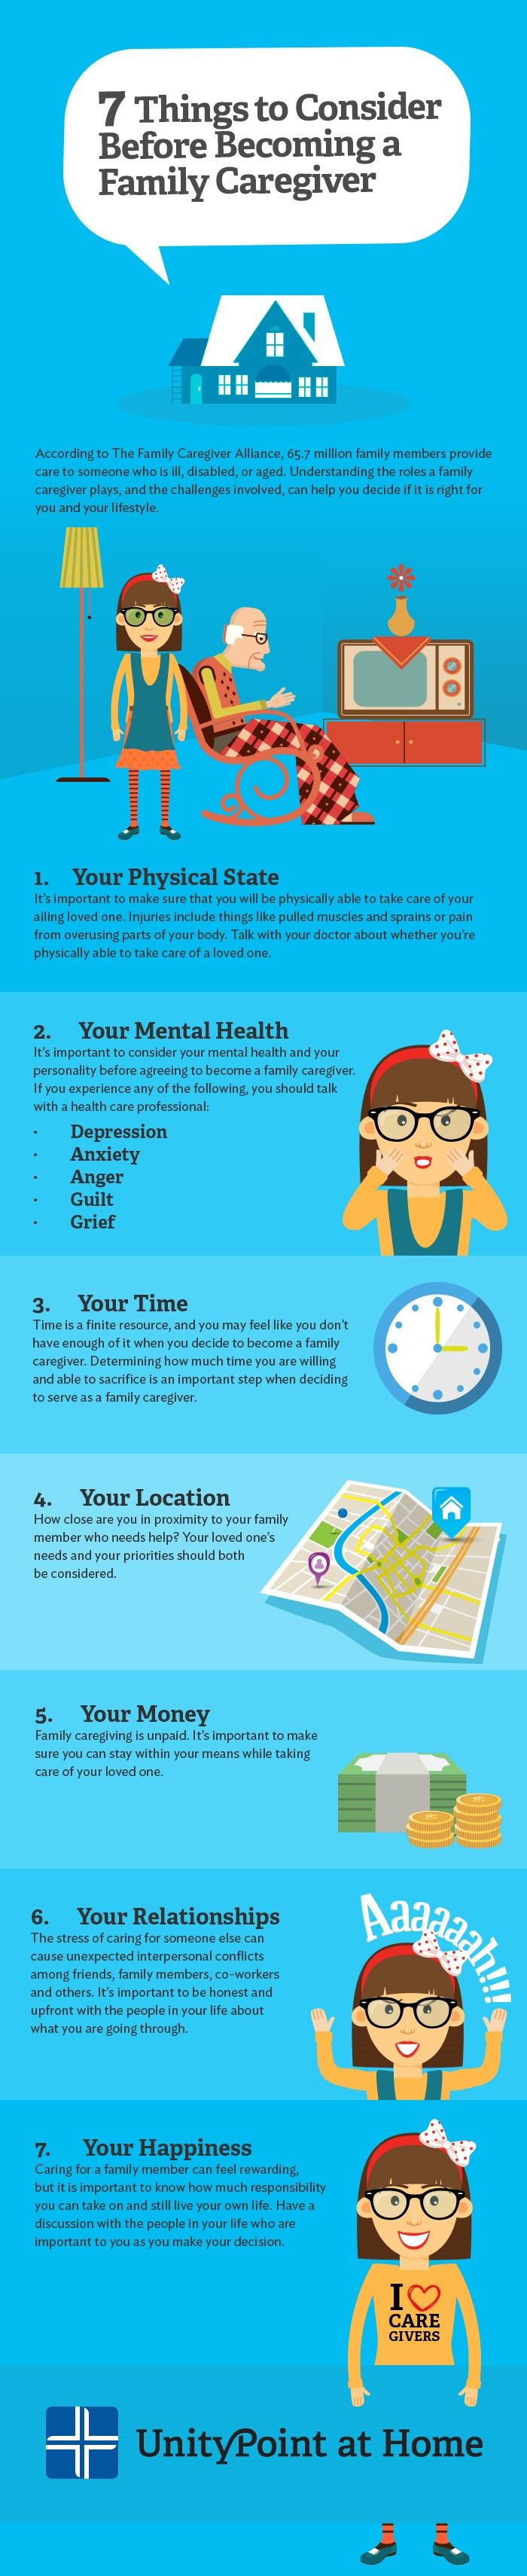 7 Things to Think About Before Becoming a Caregiver #infographic from UnityPoint at Home